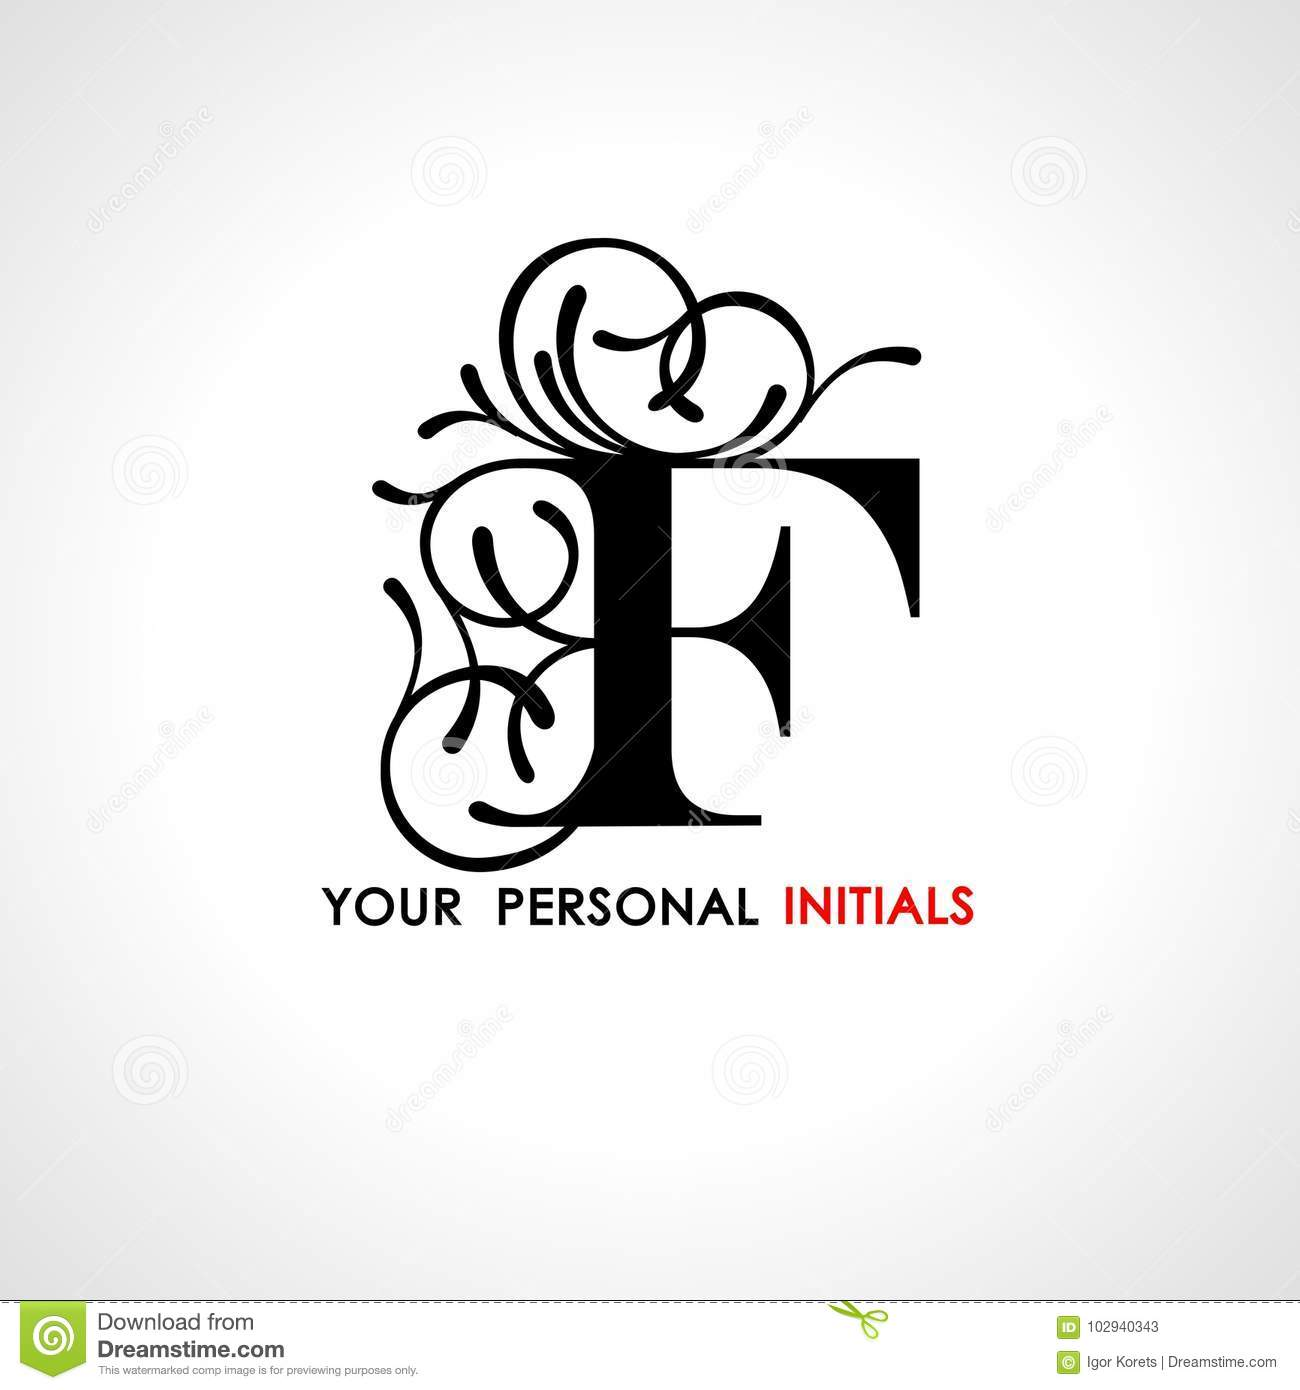 capital letter f decorated with vegetable ornament template for